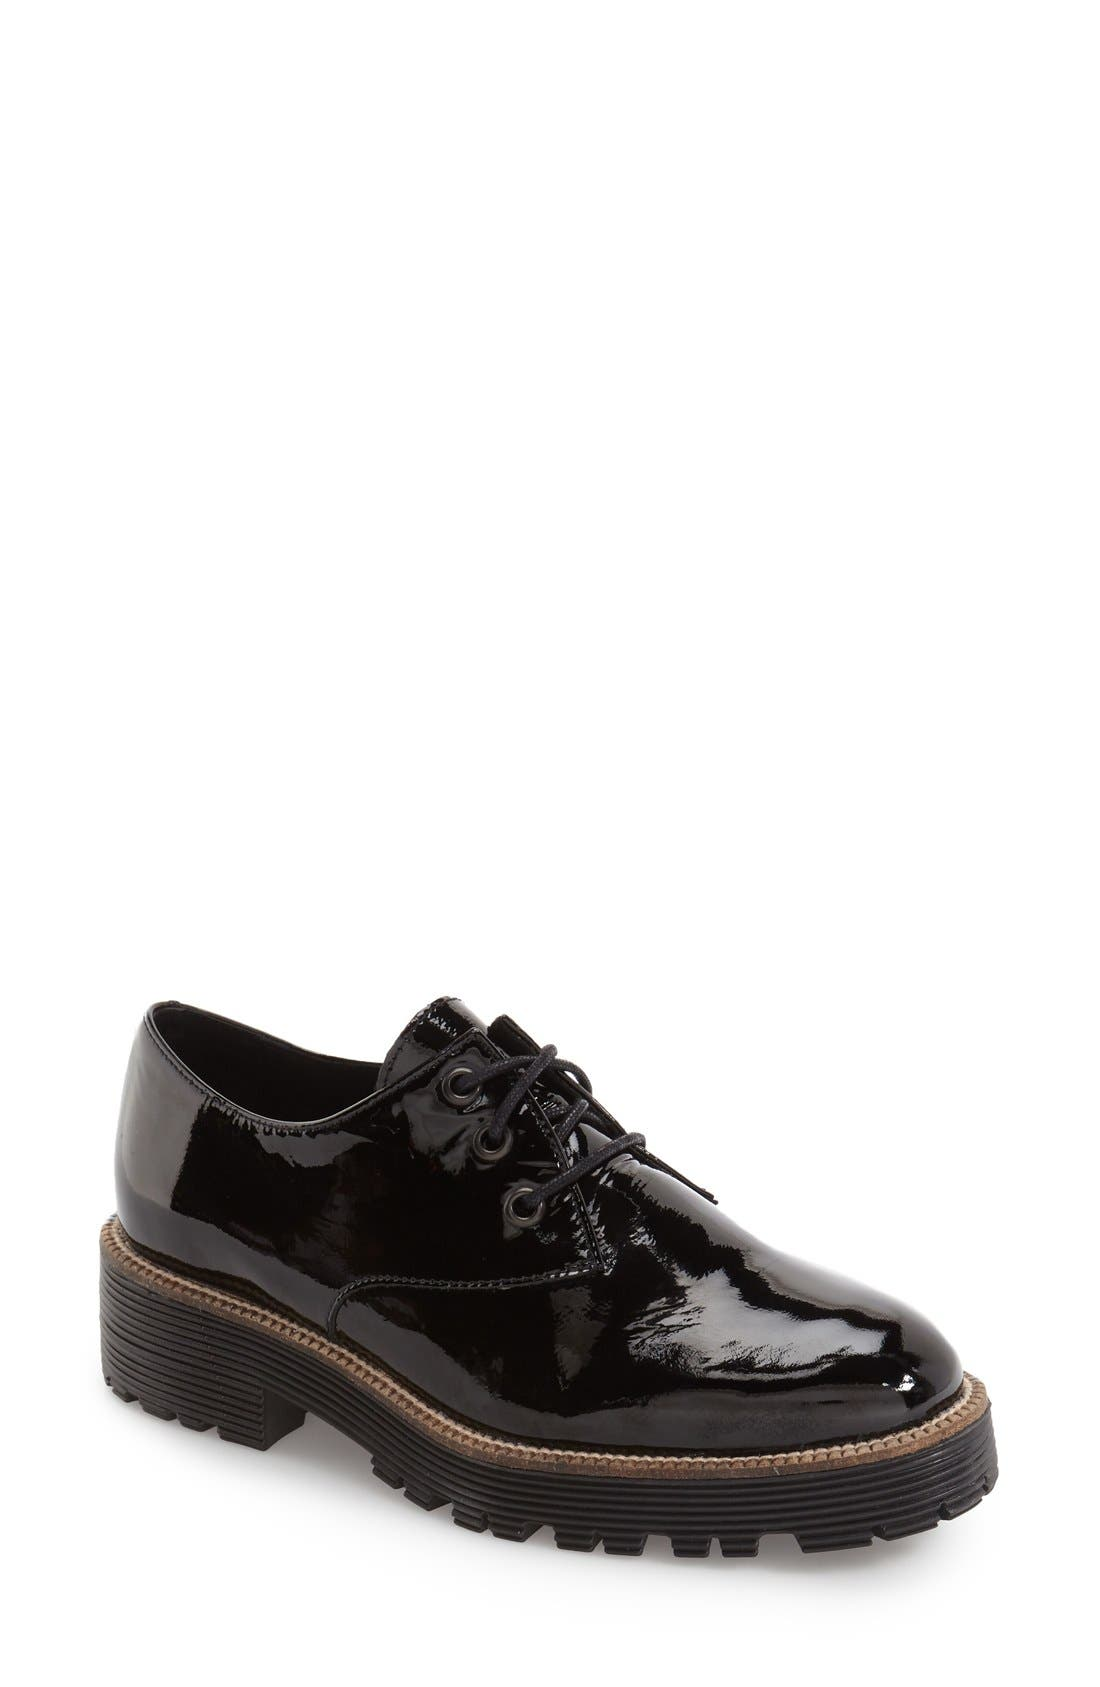 Alternate Image 1 Selected - Shelly's London 'Terrwyn' Platform Oxford (Women)